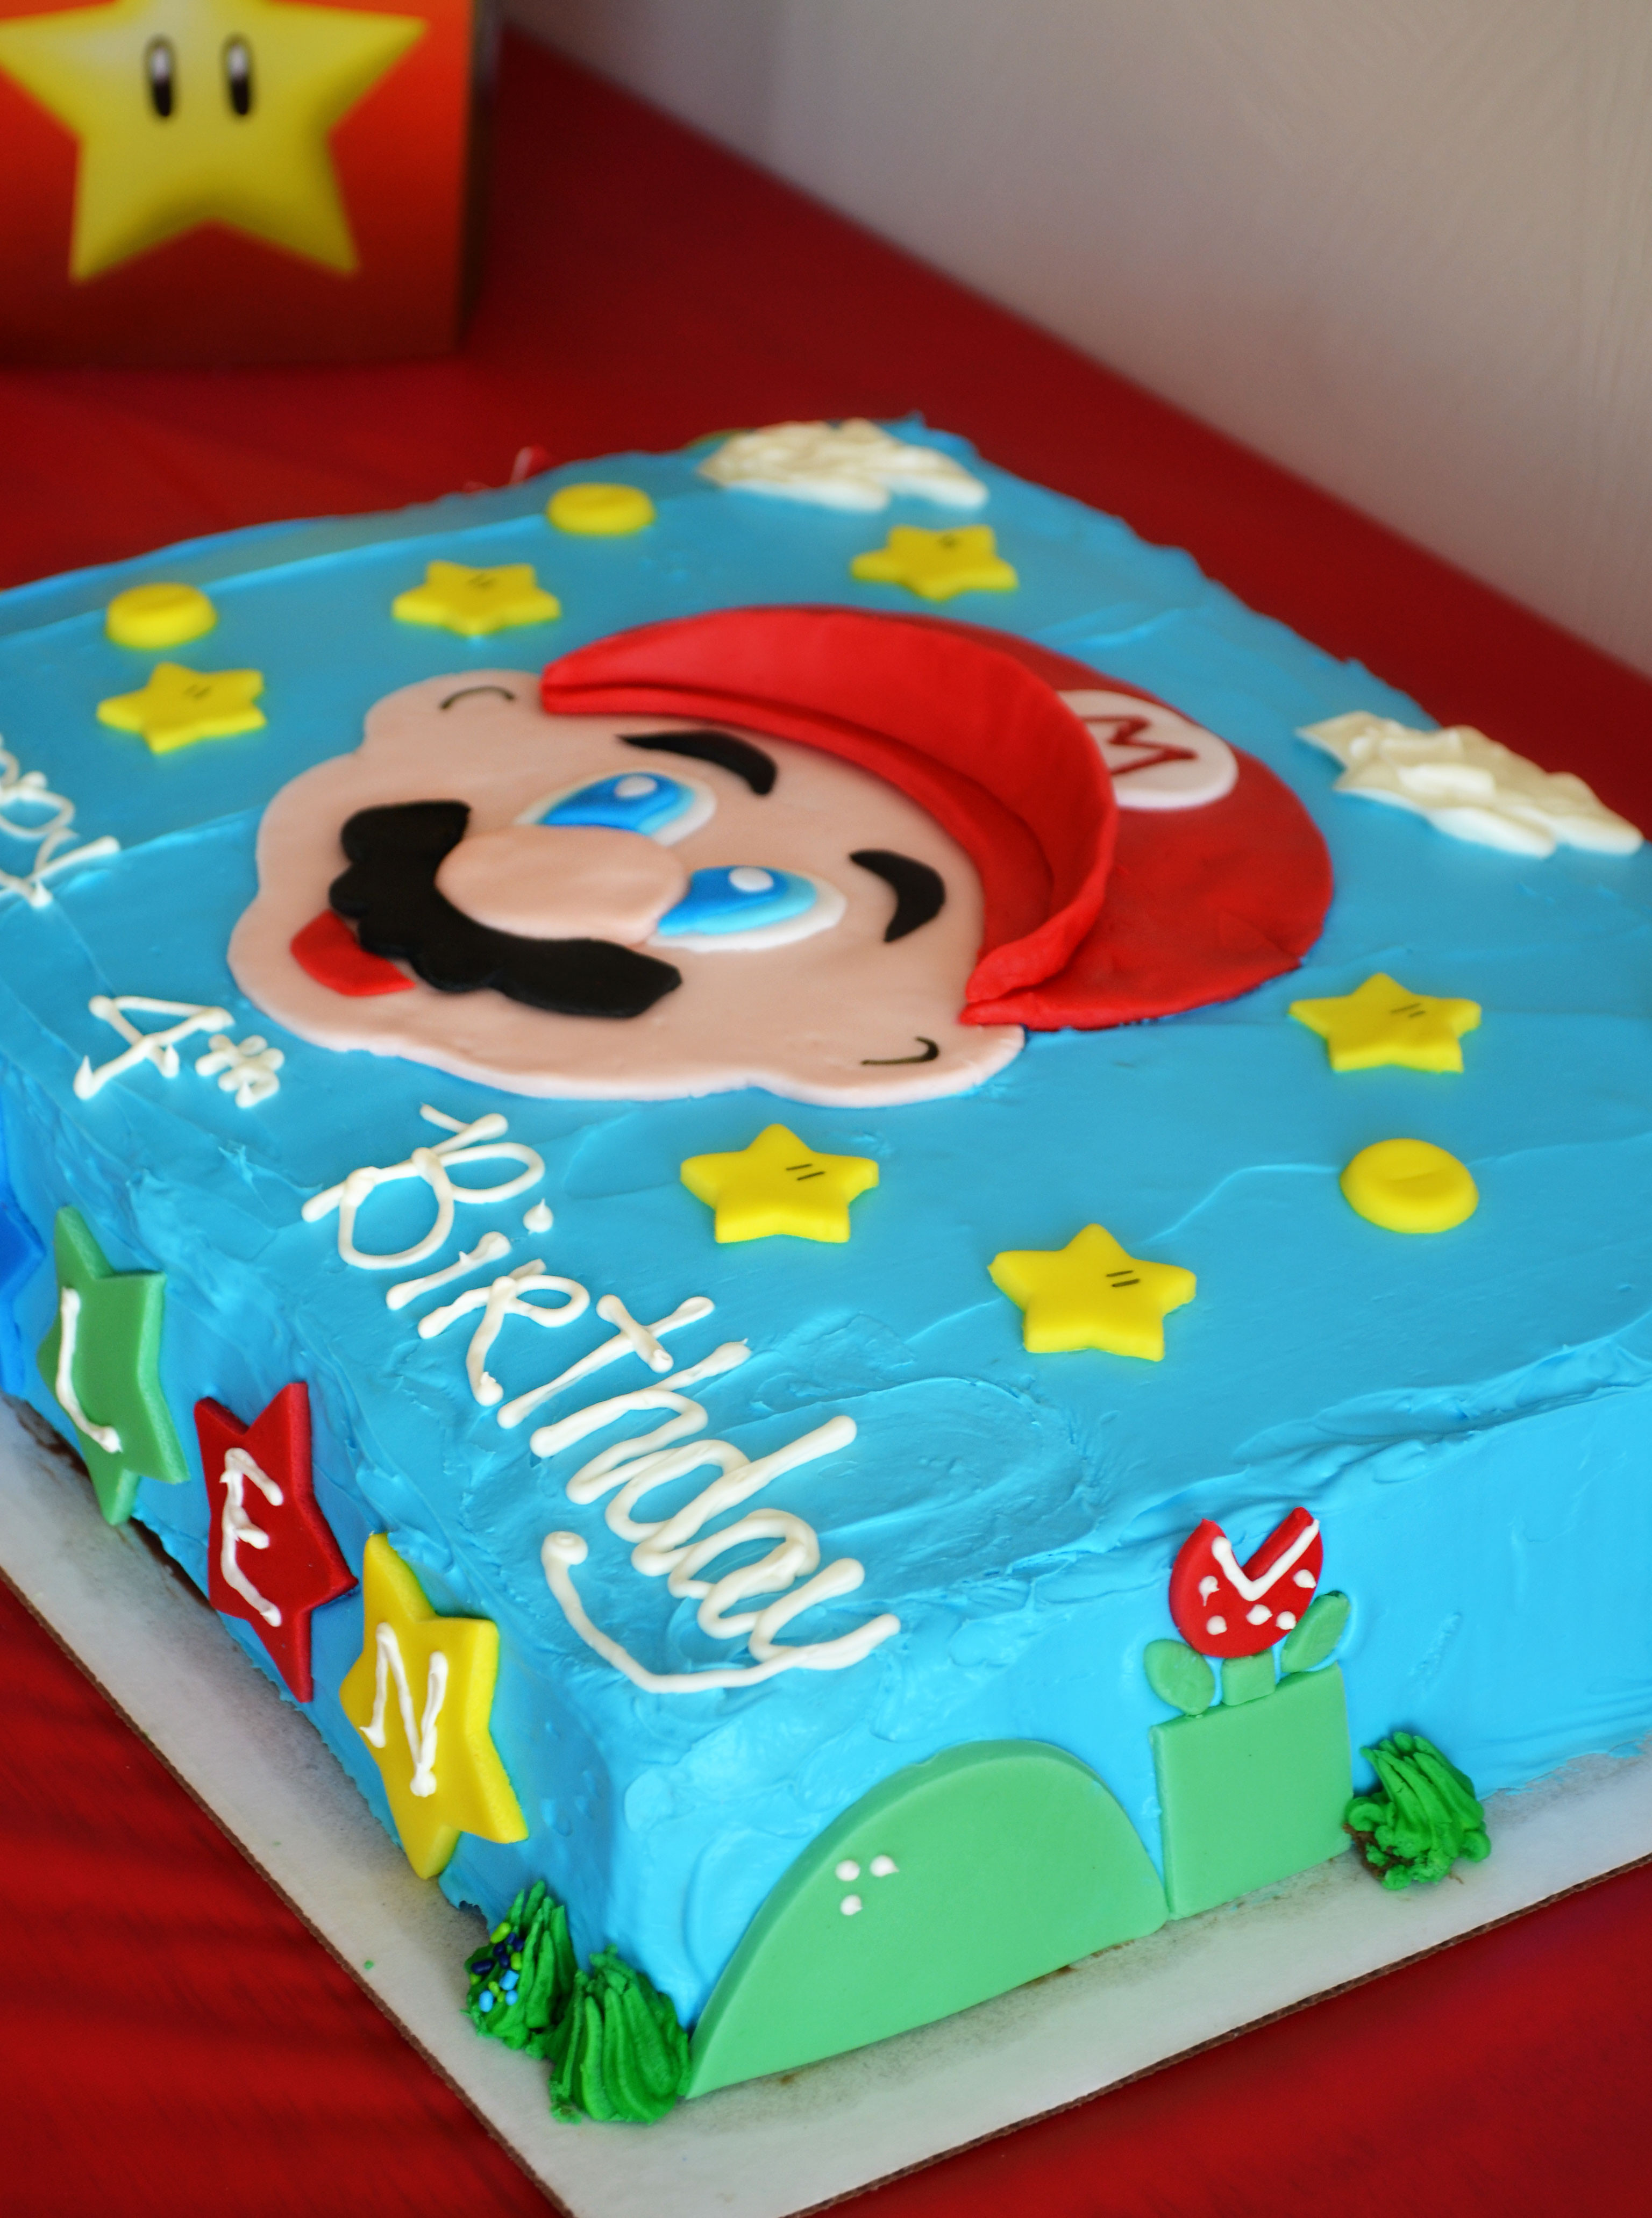 Best ideas about Super Mario Birthday Cake . Save or Pin Super Mario Brothers party & Happy Birthday Kallen Now.